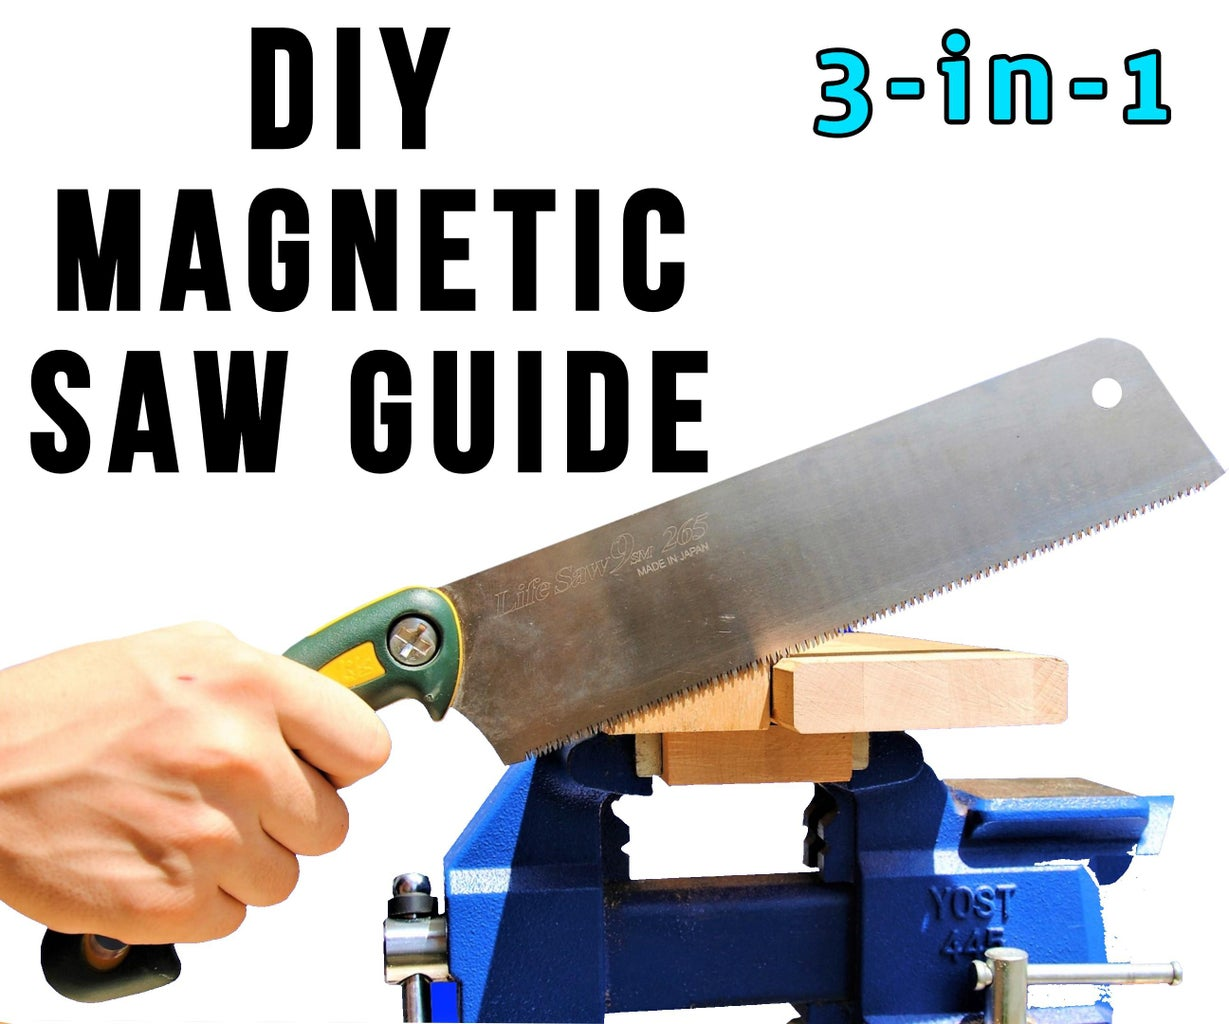 DIY Magnetic 3-in-1 Hand Saw Guide - Cut Straight & Square Without Expensive Tools!